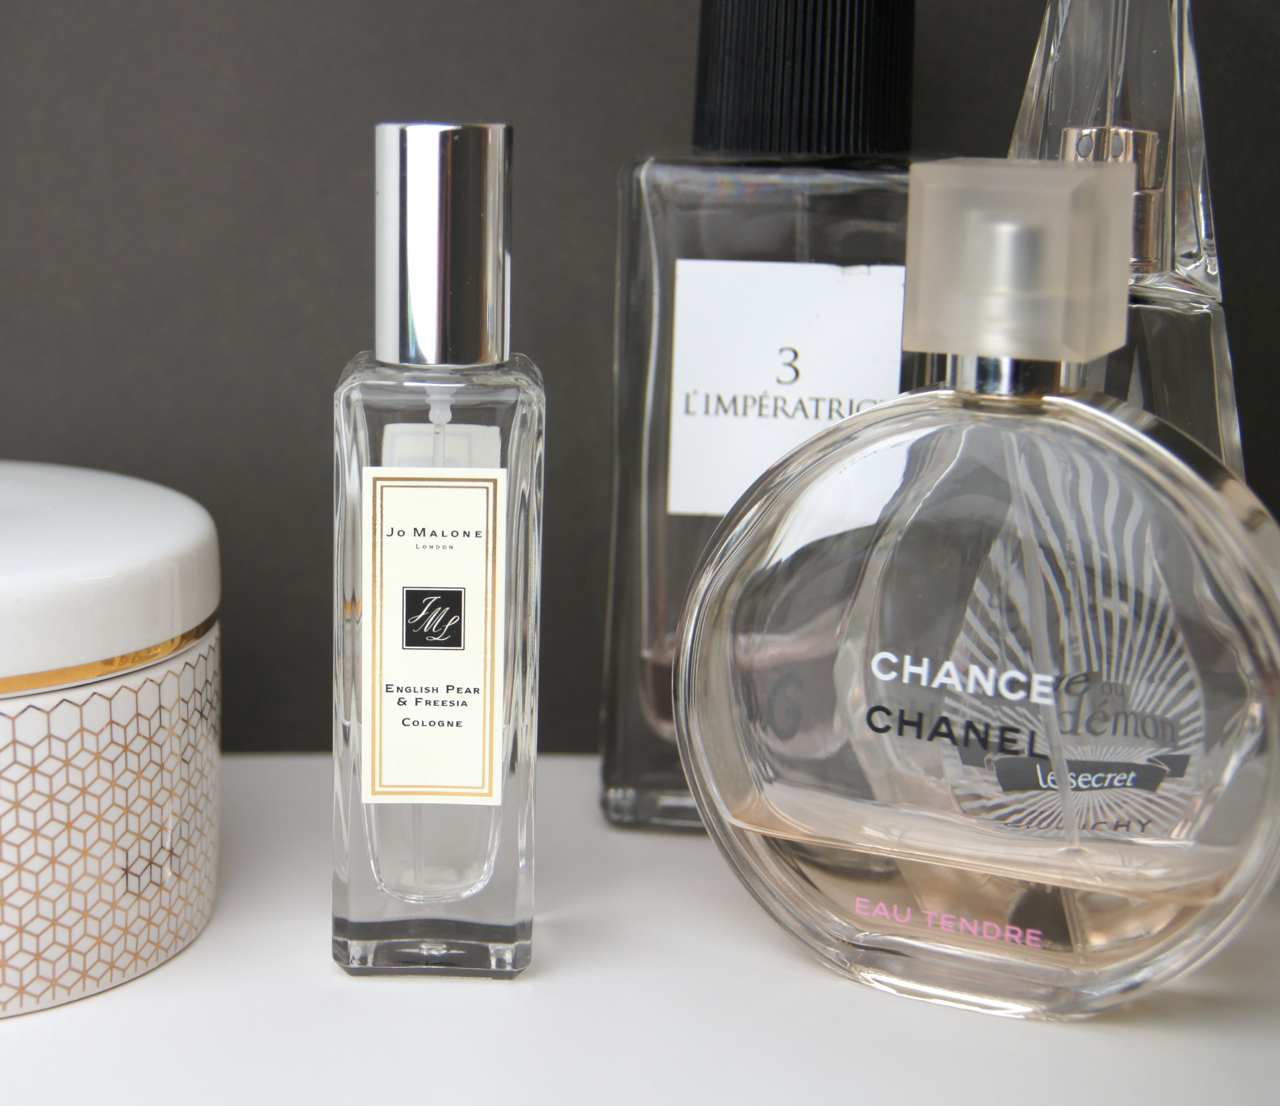 jo malone english pear and freesia cologne review summer fragrance favourites